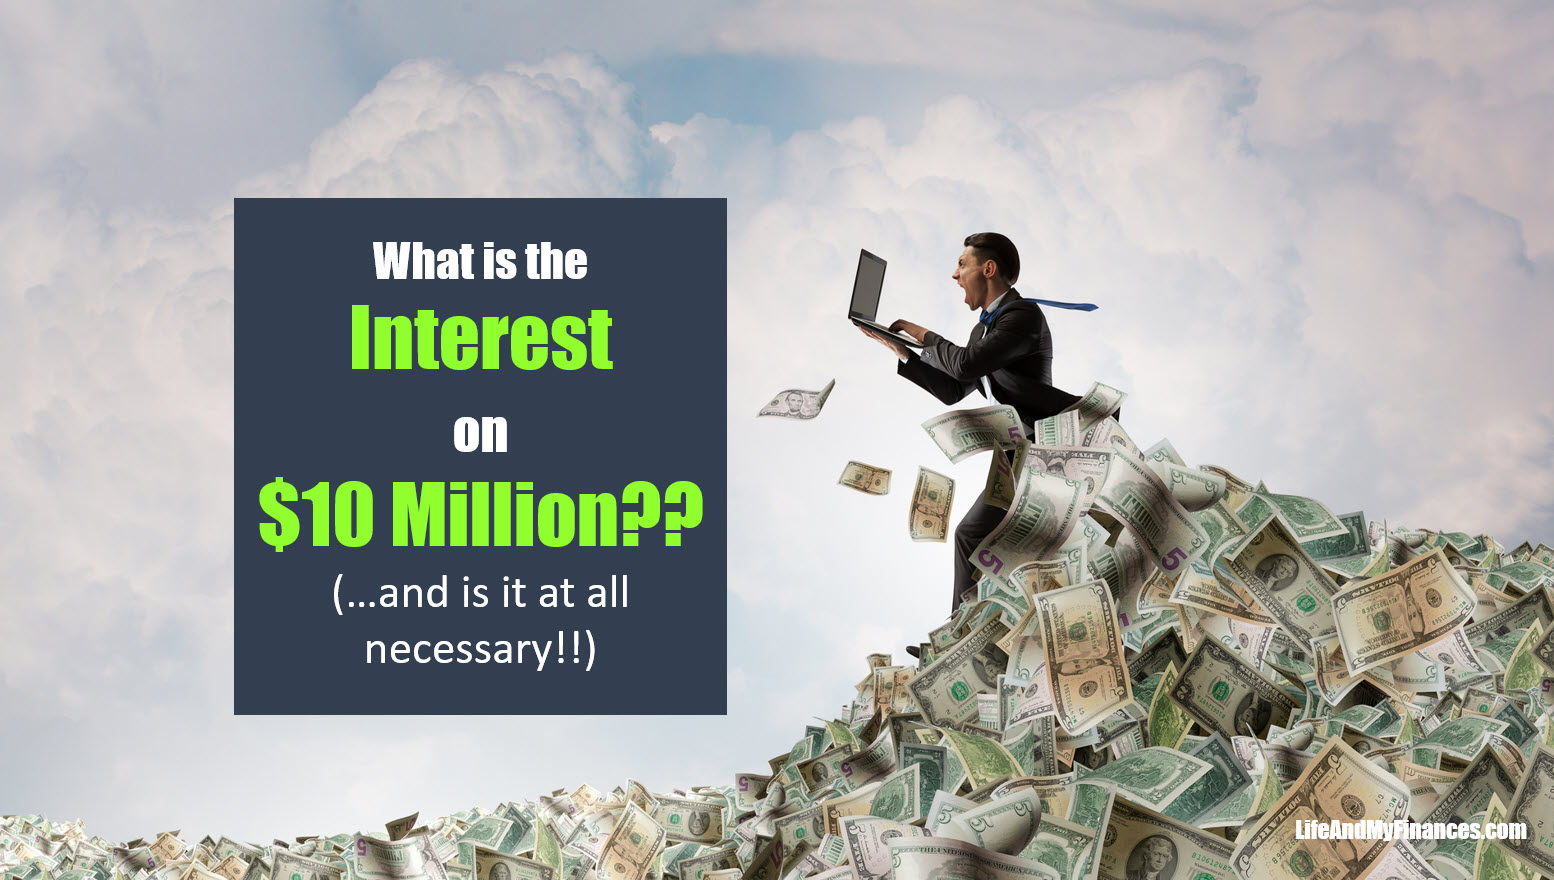 What Is The Interest On 10 Million Dollars? (And Is It At All Necessary??)